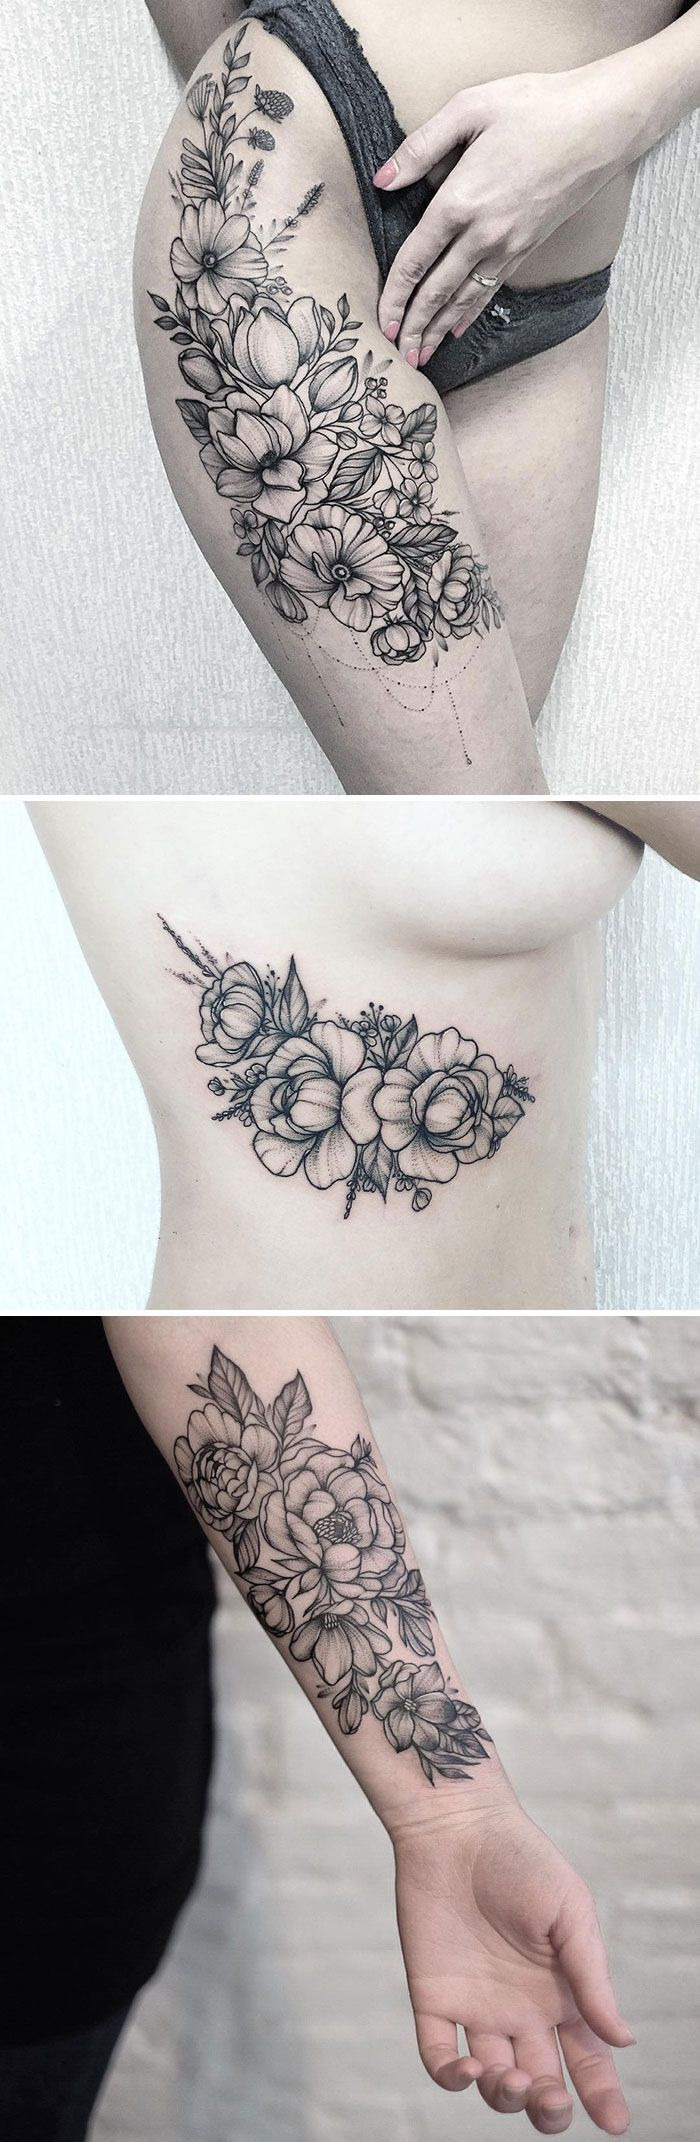 tattoo An artist who immortalizes the delicate beauty of flowers Angkor Amazing